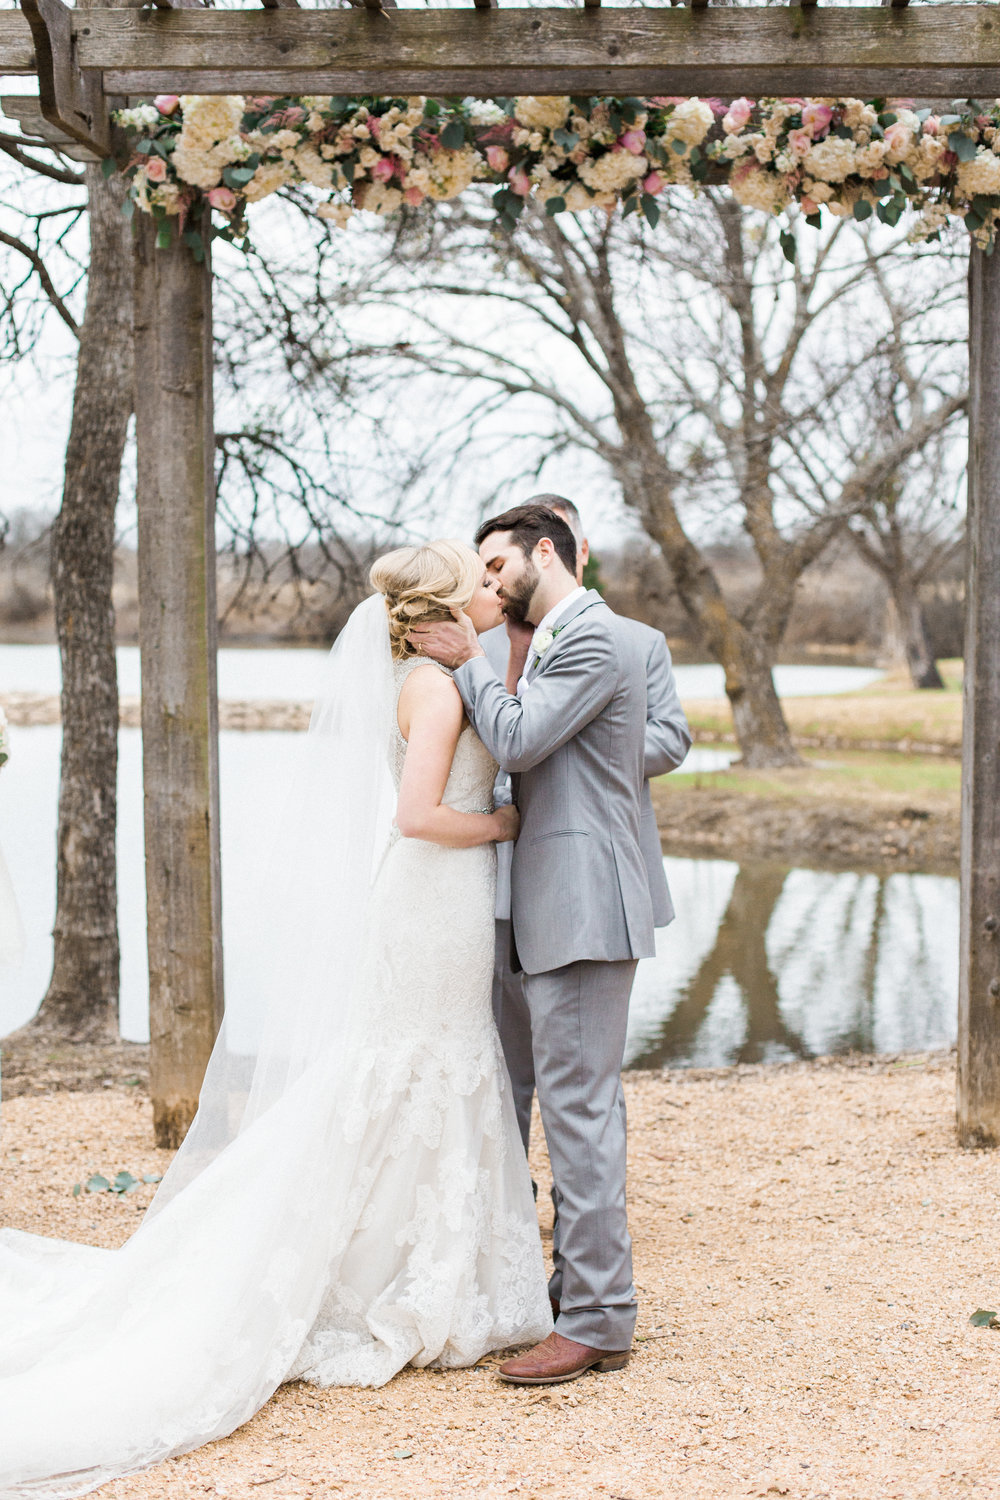 Lexi + Henre, December 2016 The Venue At Waterstone, Celina, TX